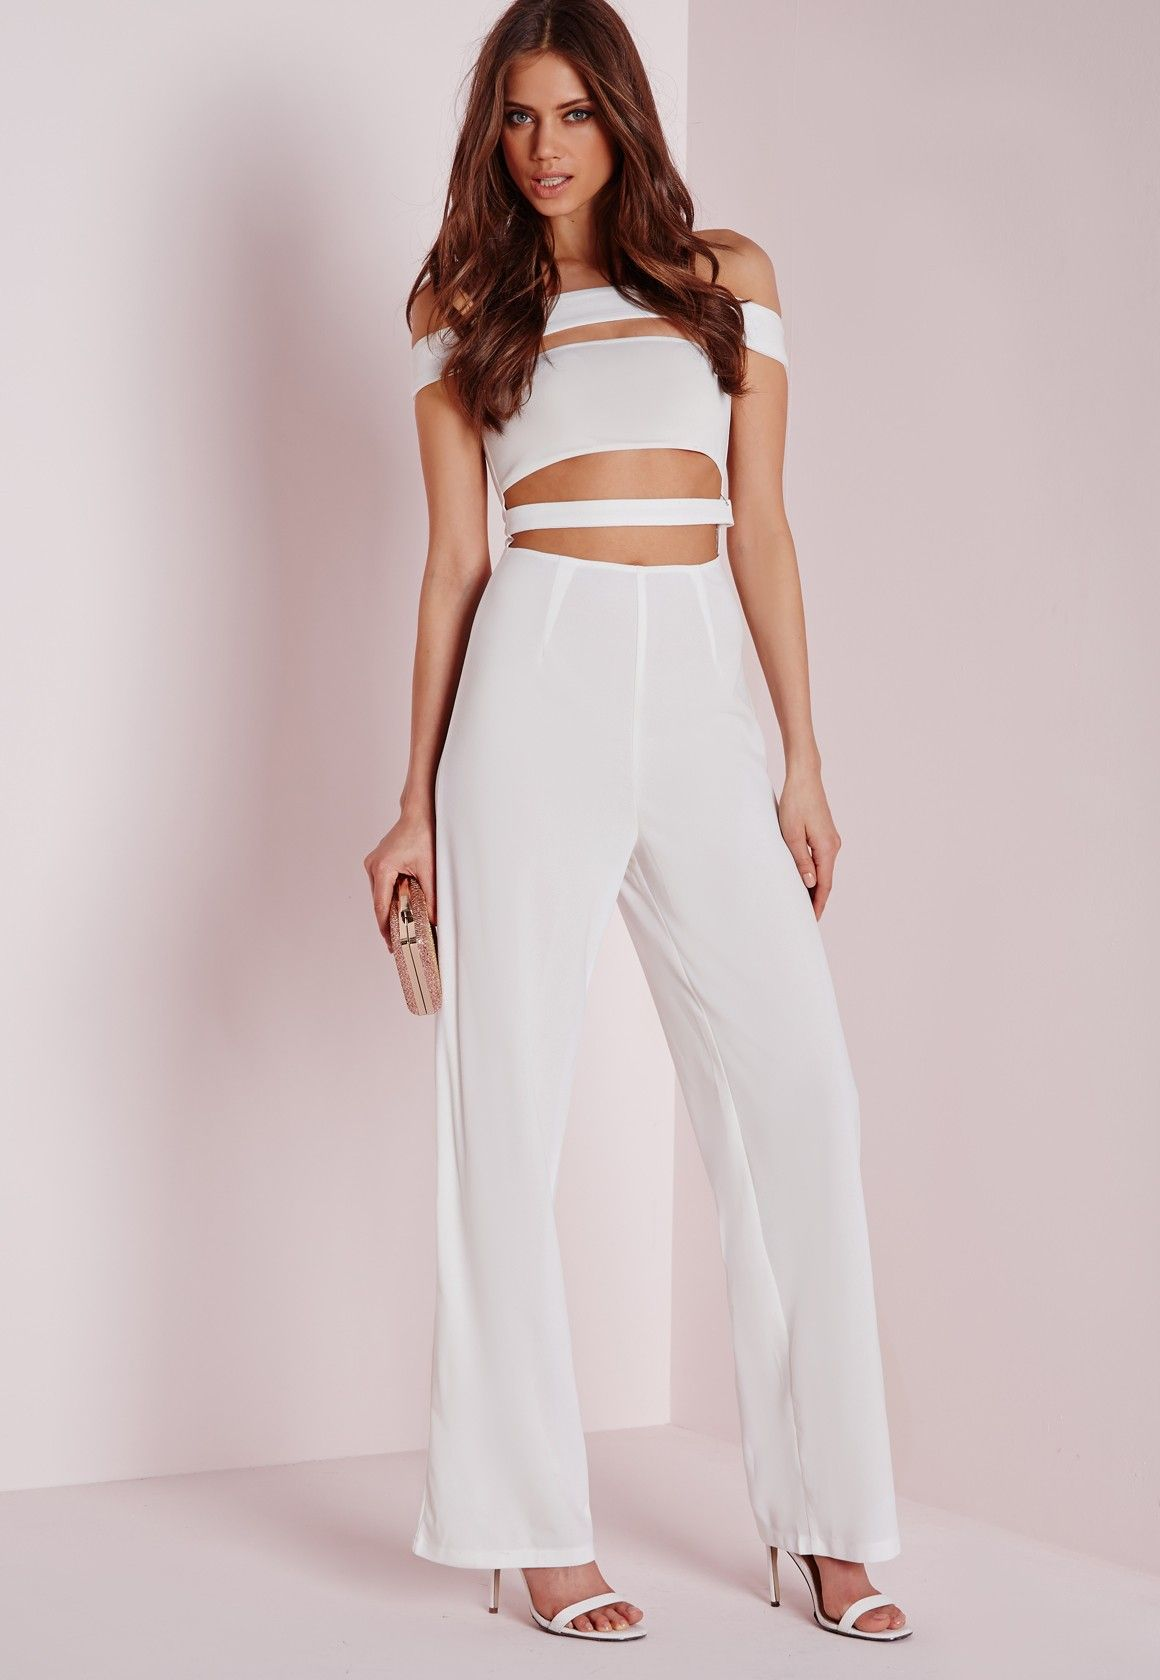 a21a9f103c3 Missguided - Strappy Bardot Jumpsuit White